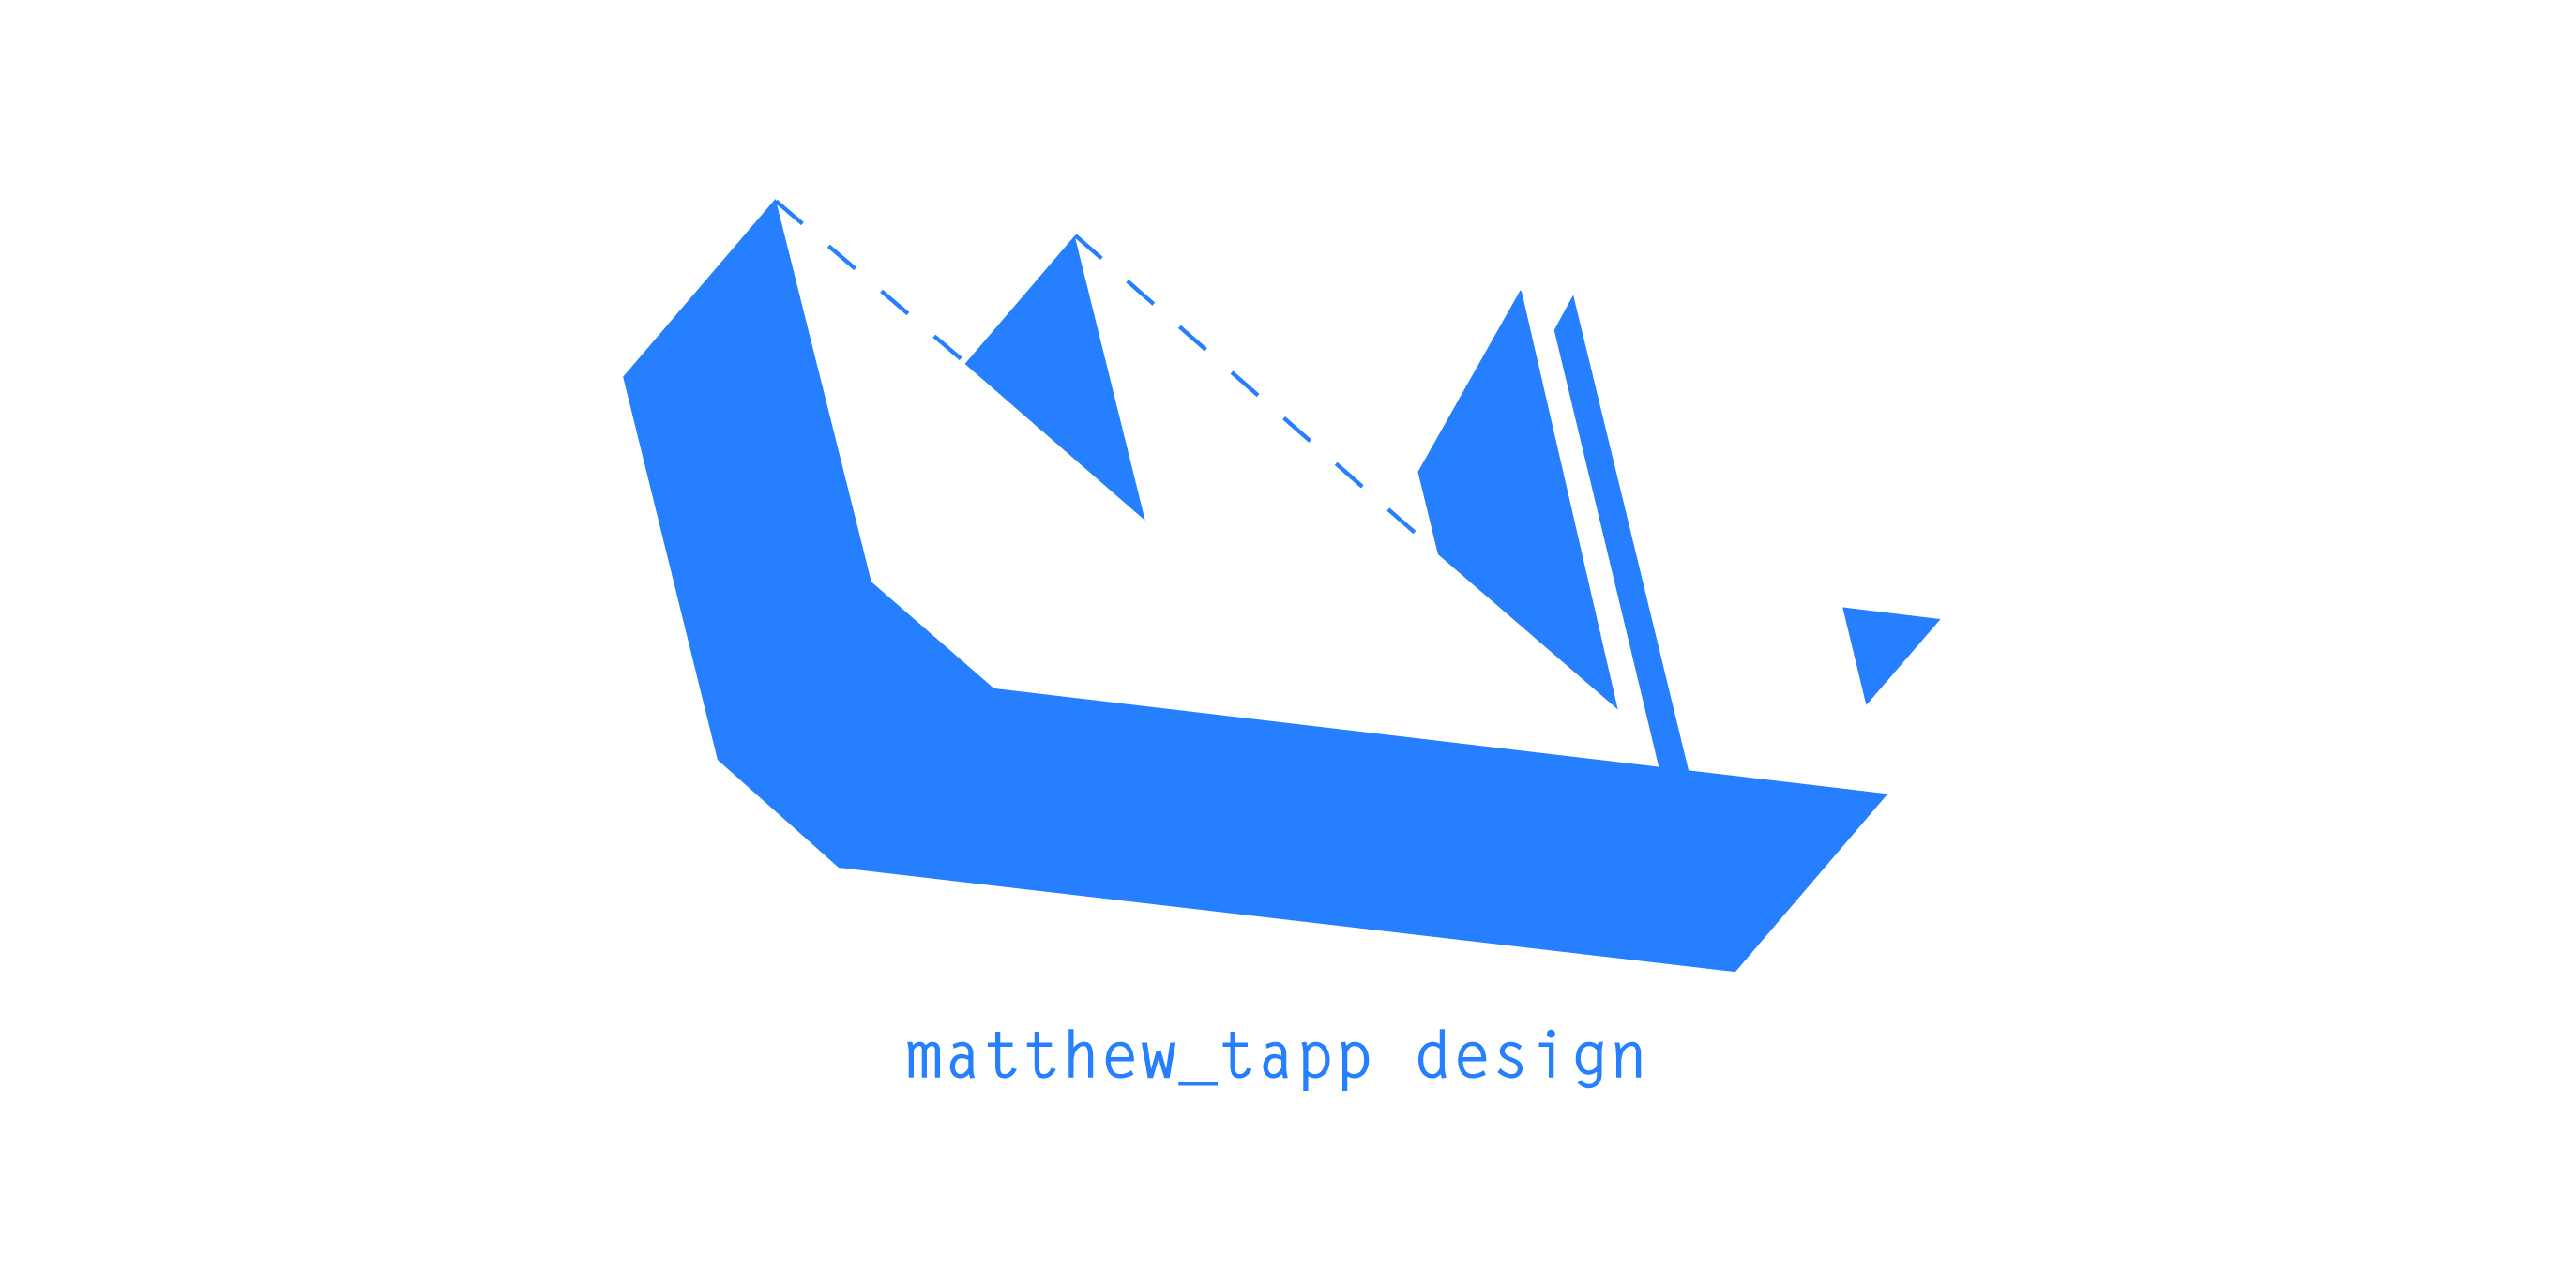 My current personal logo design. This is my current logo.